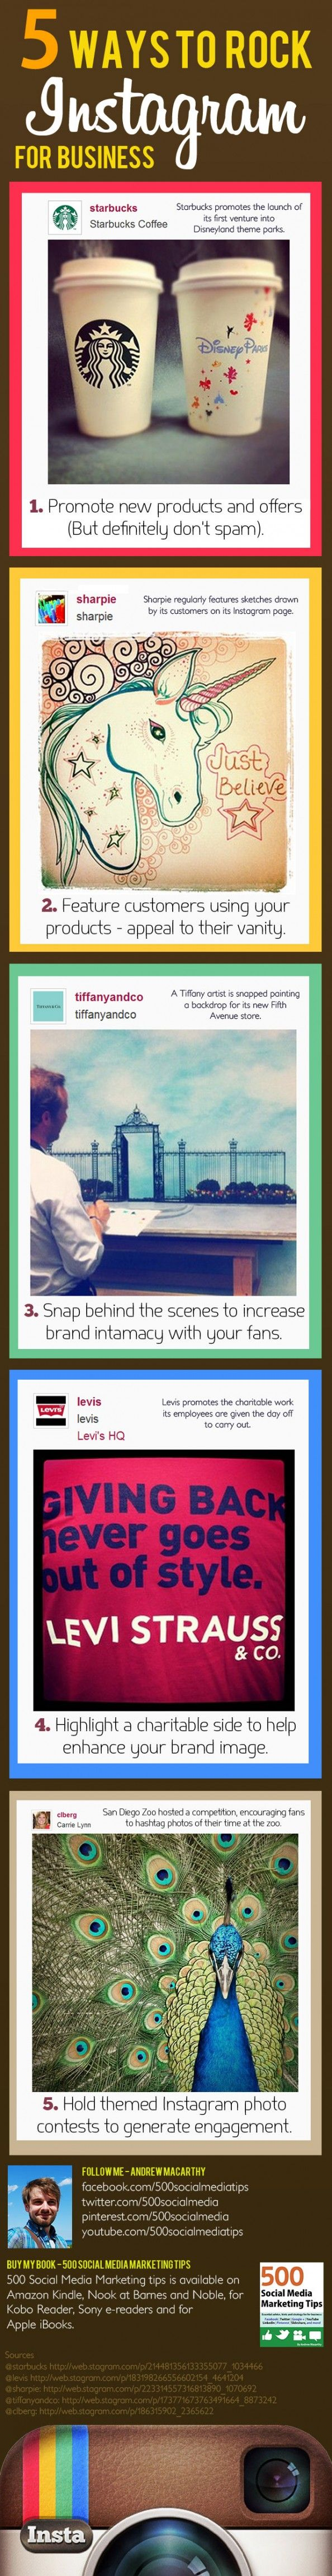 5 Ways to Rock #Instagram For Business